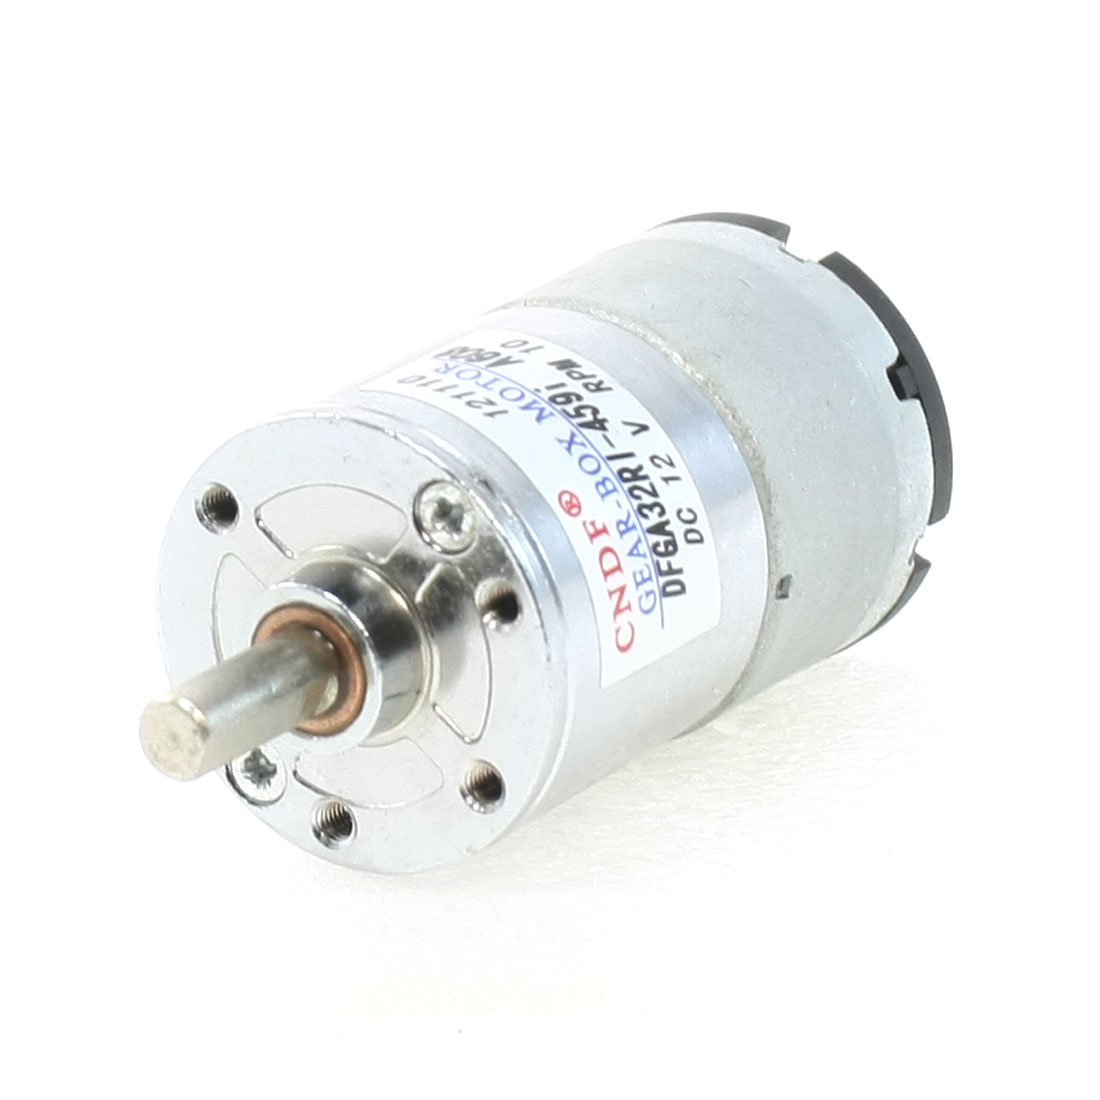 DC 12V 10RPM Speed Reducing Power Geared Motor 6mm x 15mm